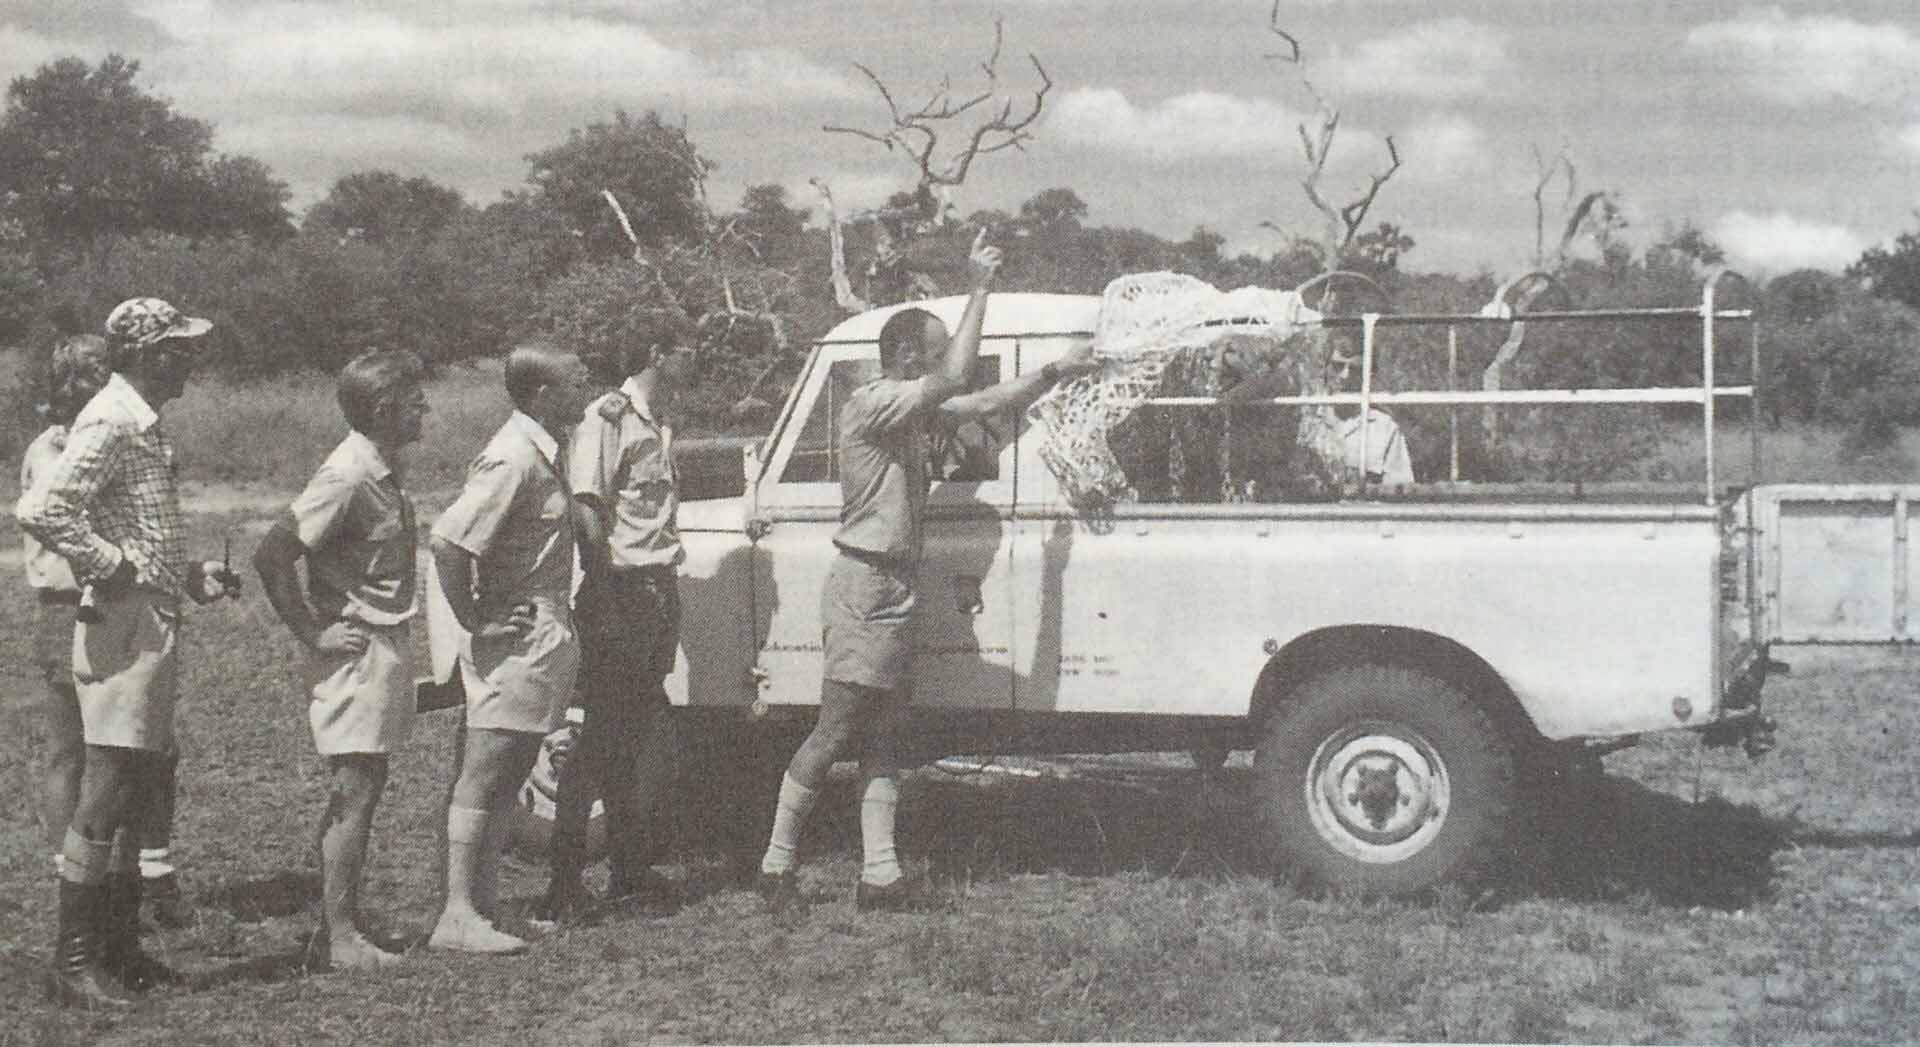 Dr Eddie Young, with raised hand, suggested in 1976 that the Klaserie Reserve be made available as a Cheetah sanctuary.